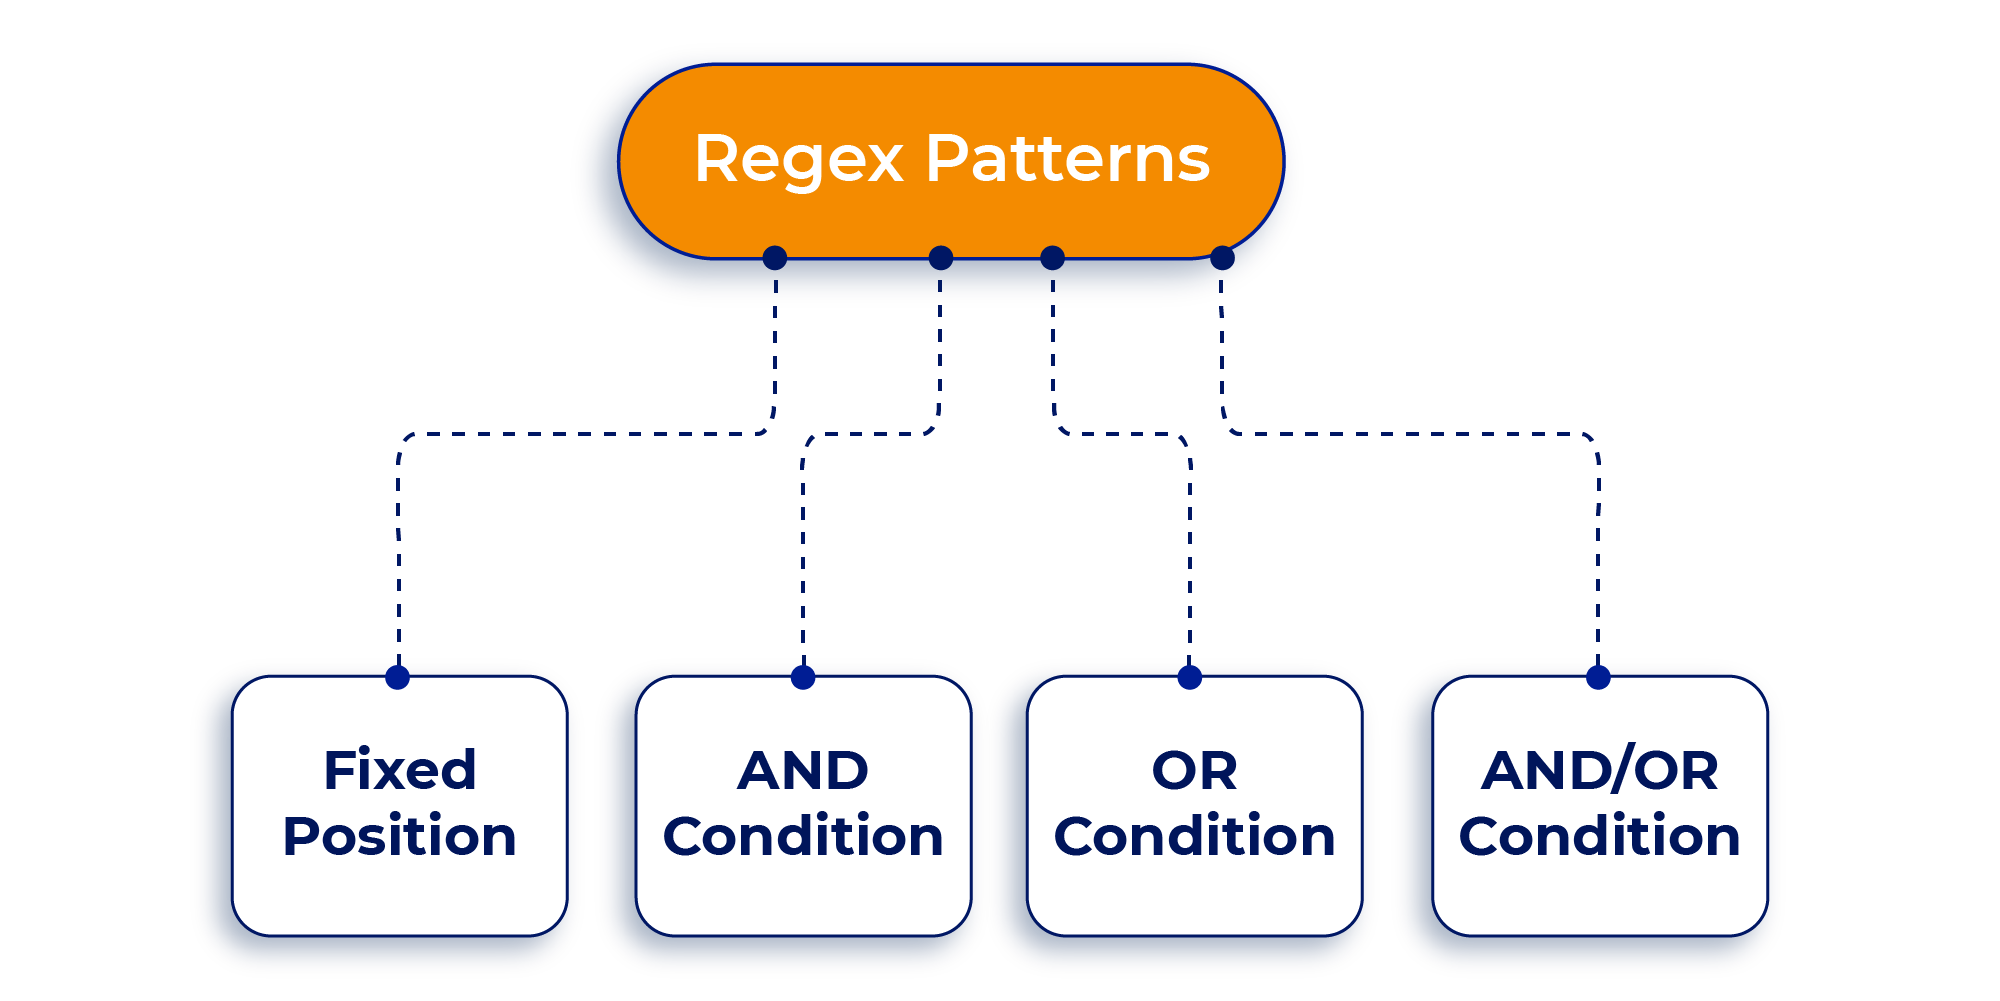 Regex Patterns in Cognitive Search